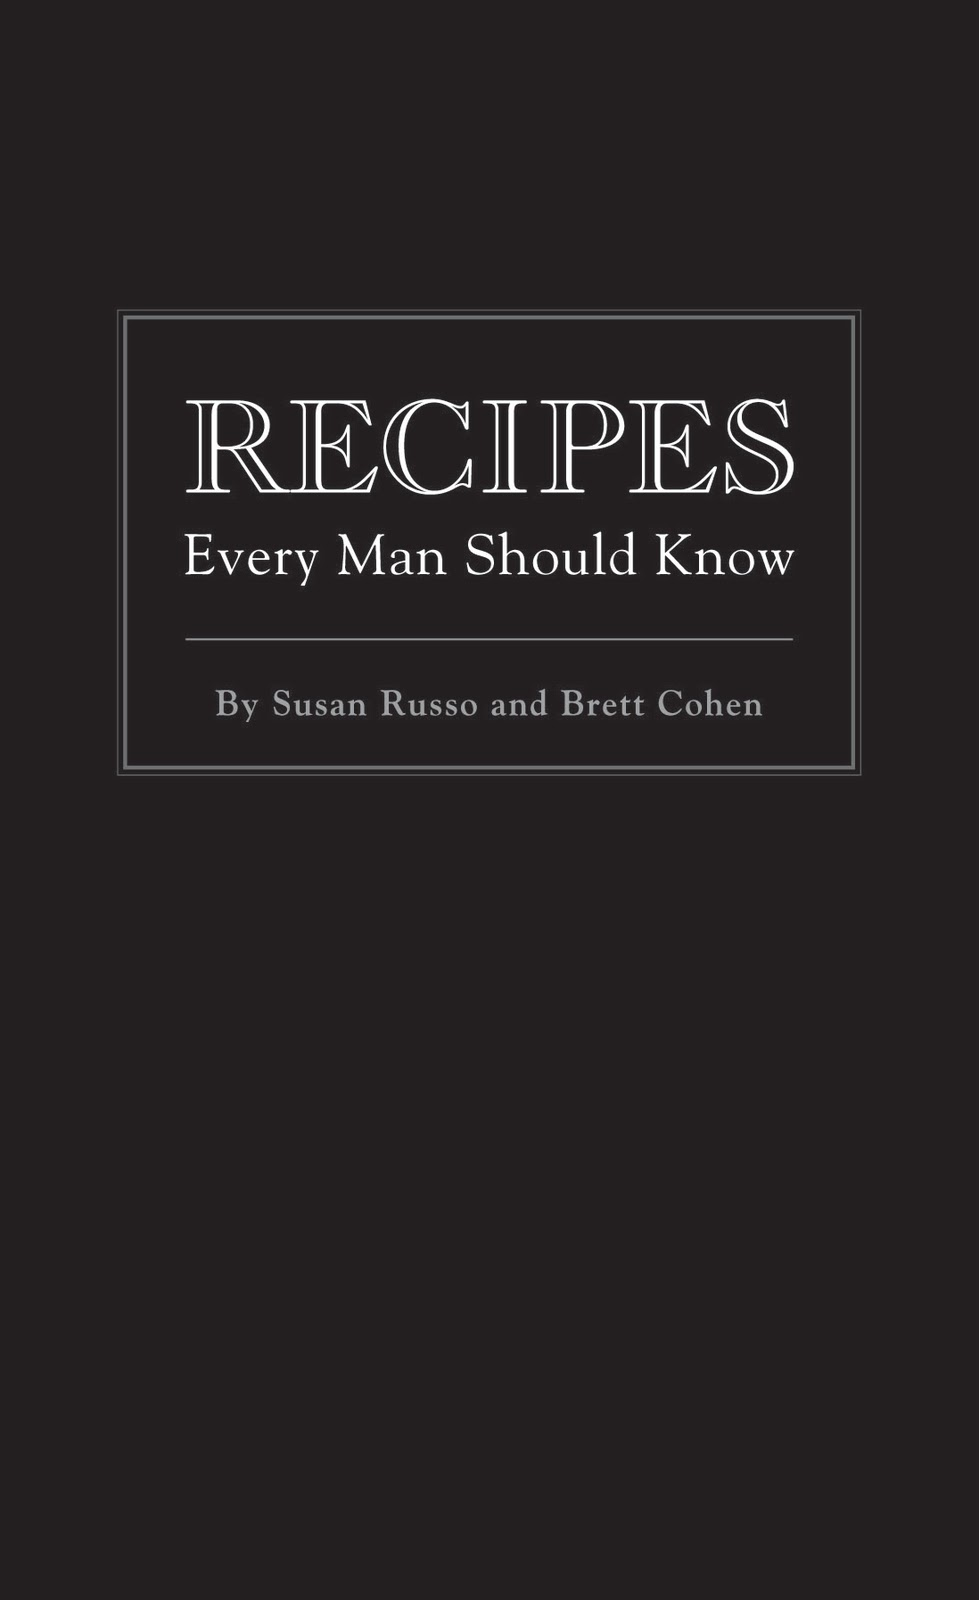 meals every man should know how to cook